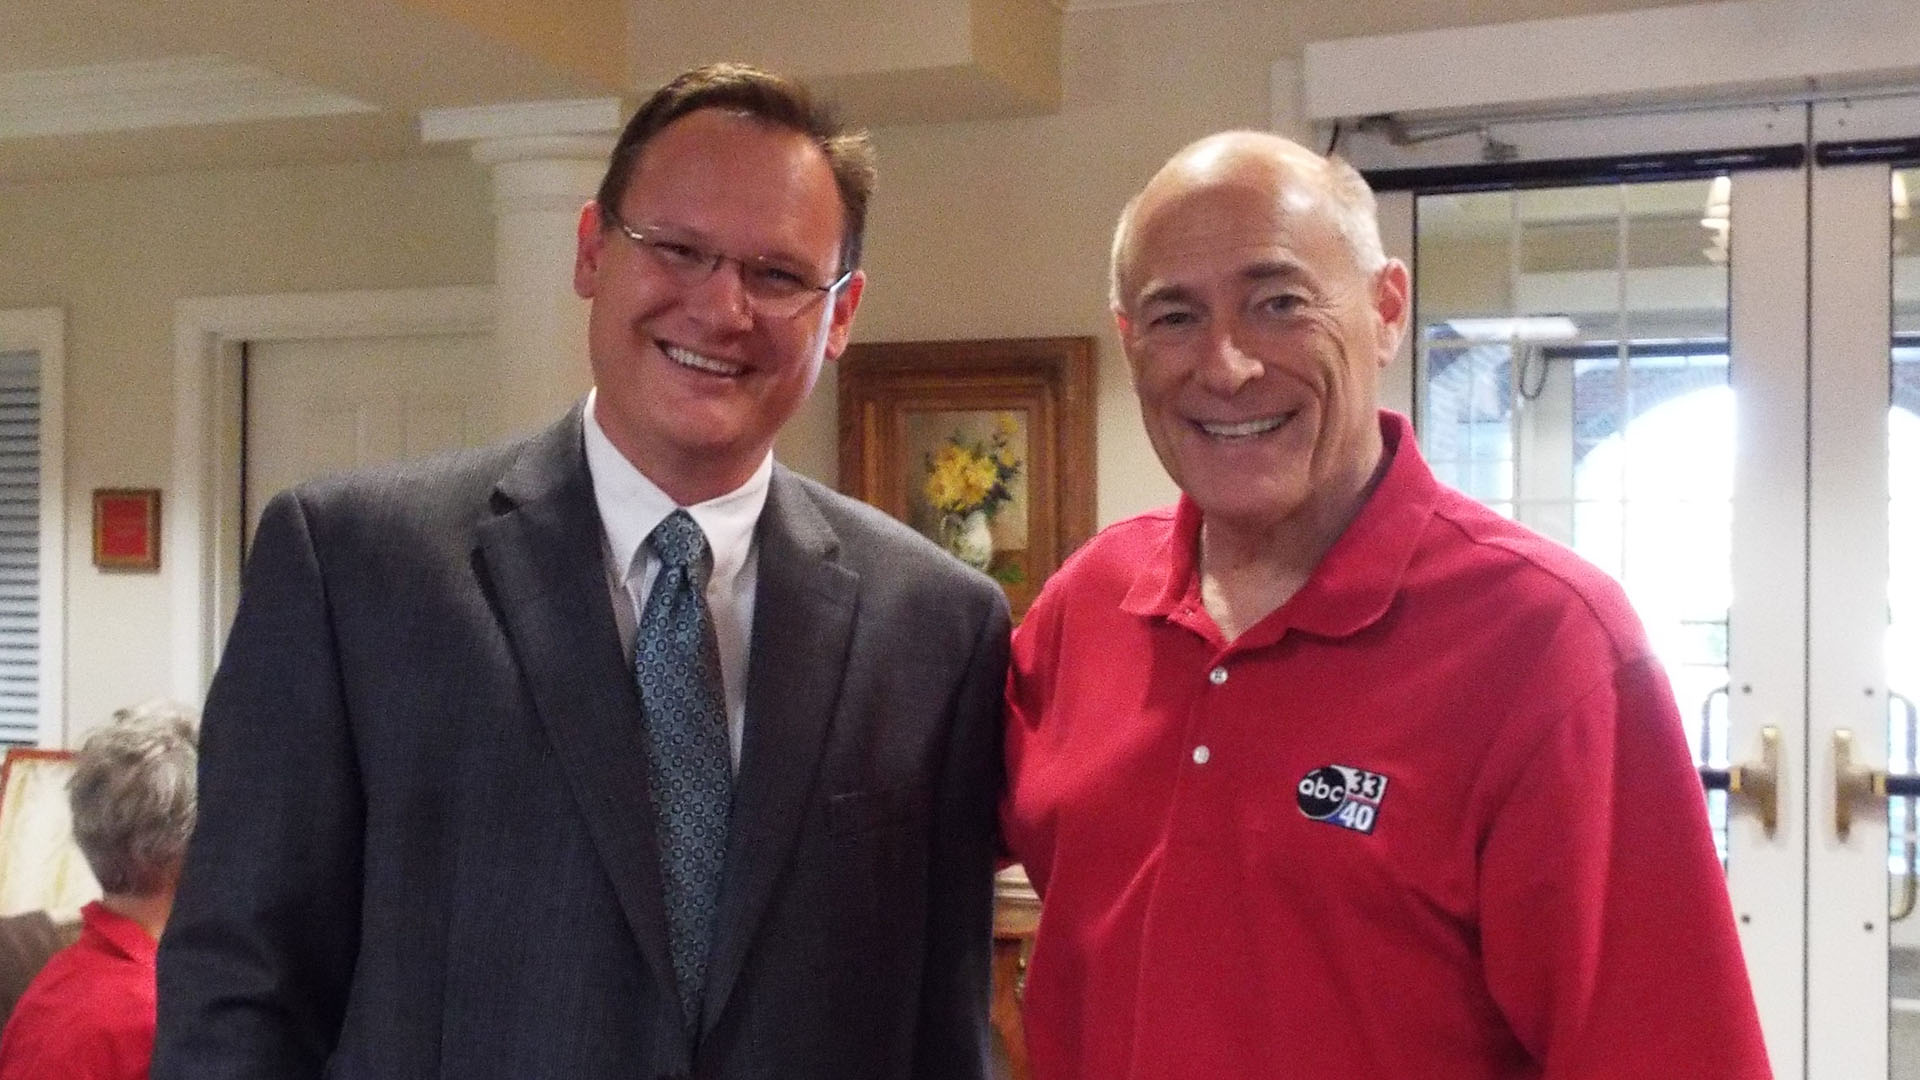 James Spann poses with director